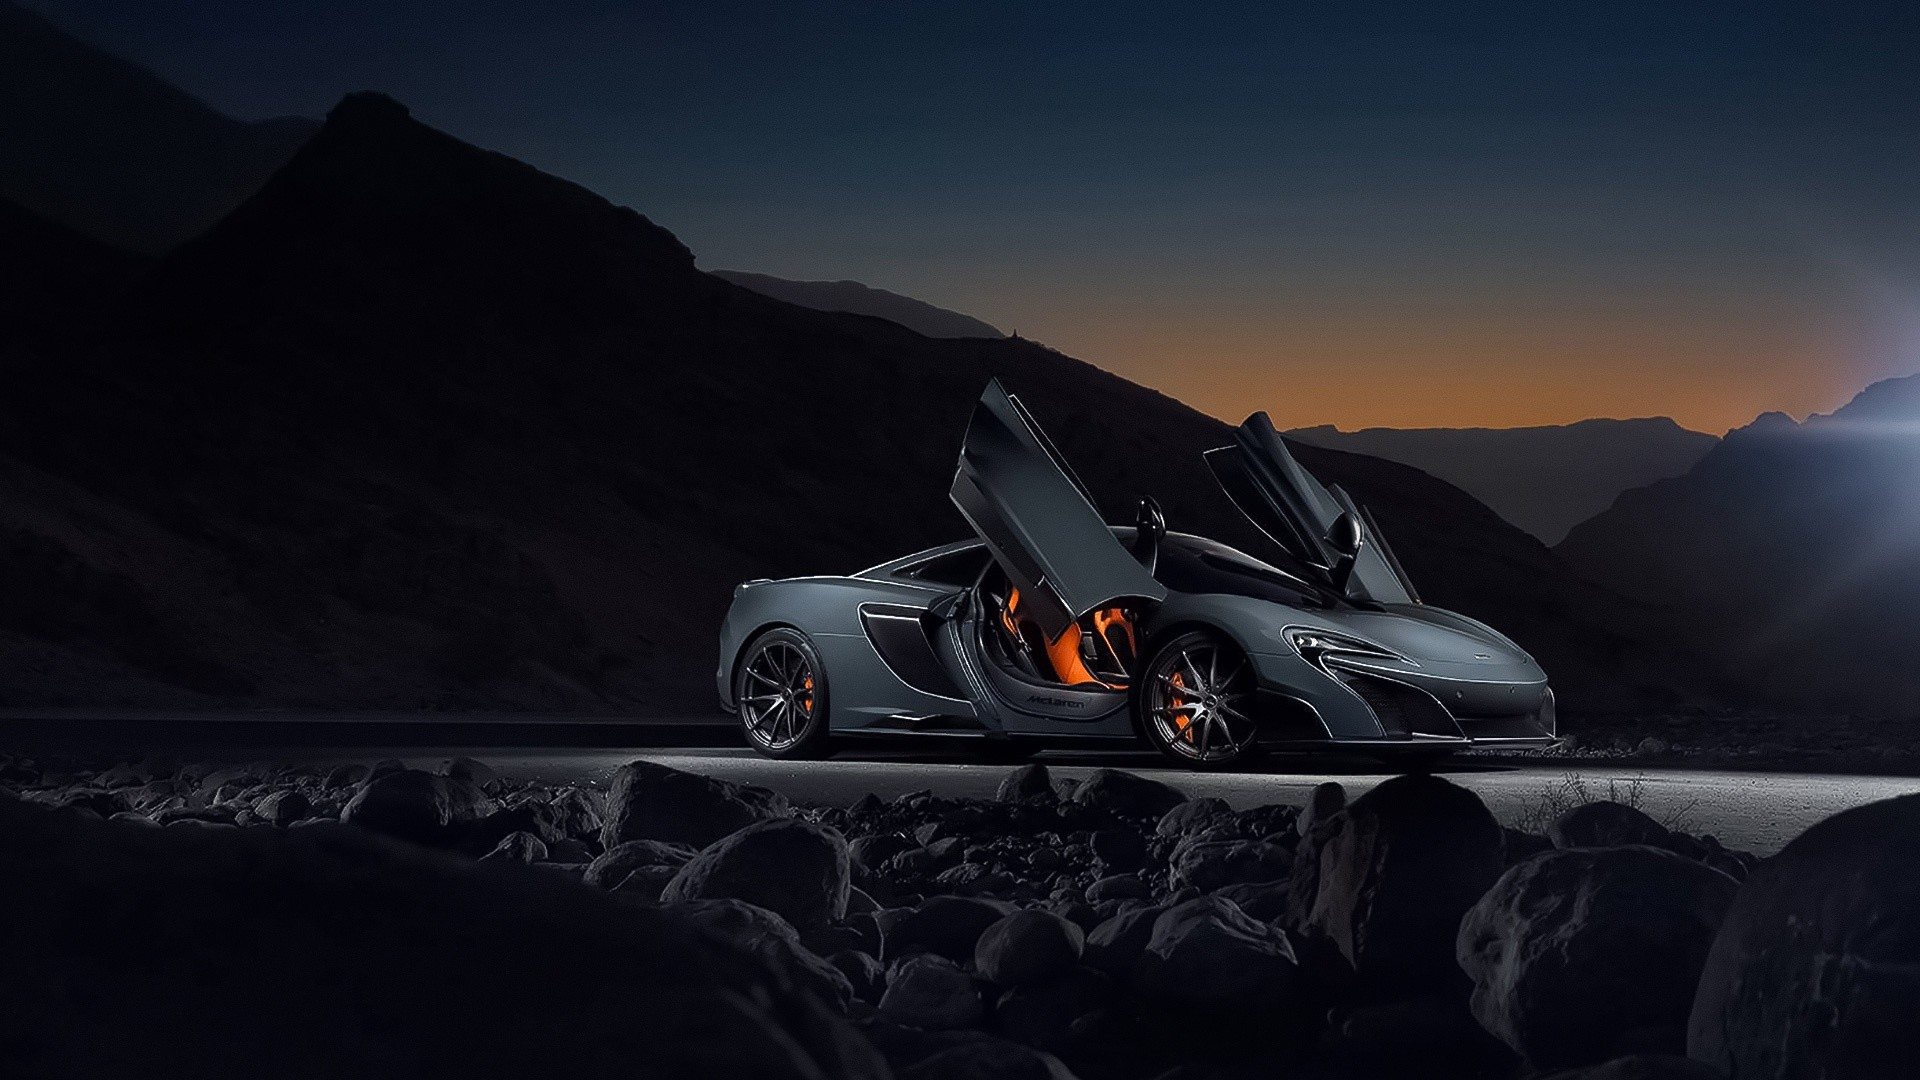 Supercars hd wallpapers 1080p 76 images - 720 x 1080 wallpaper ...